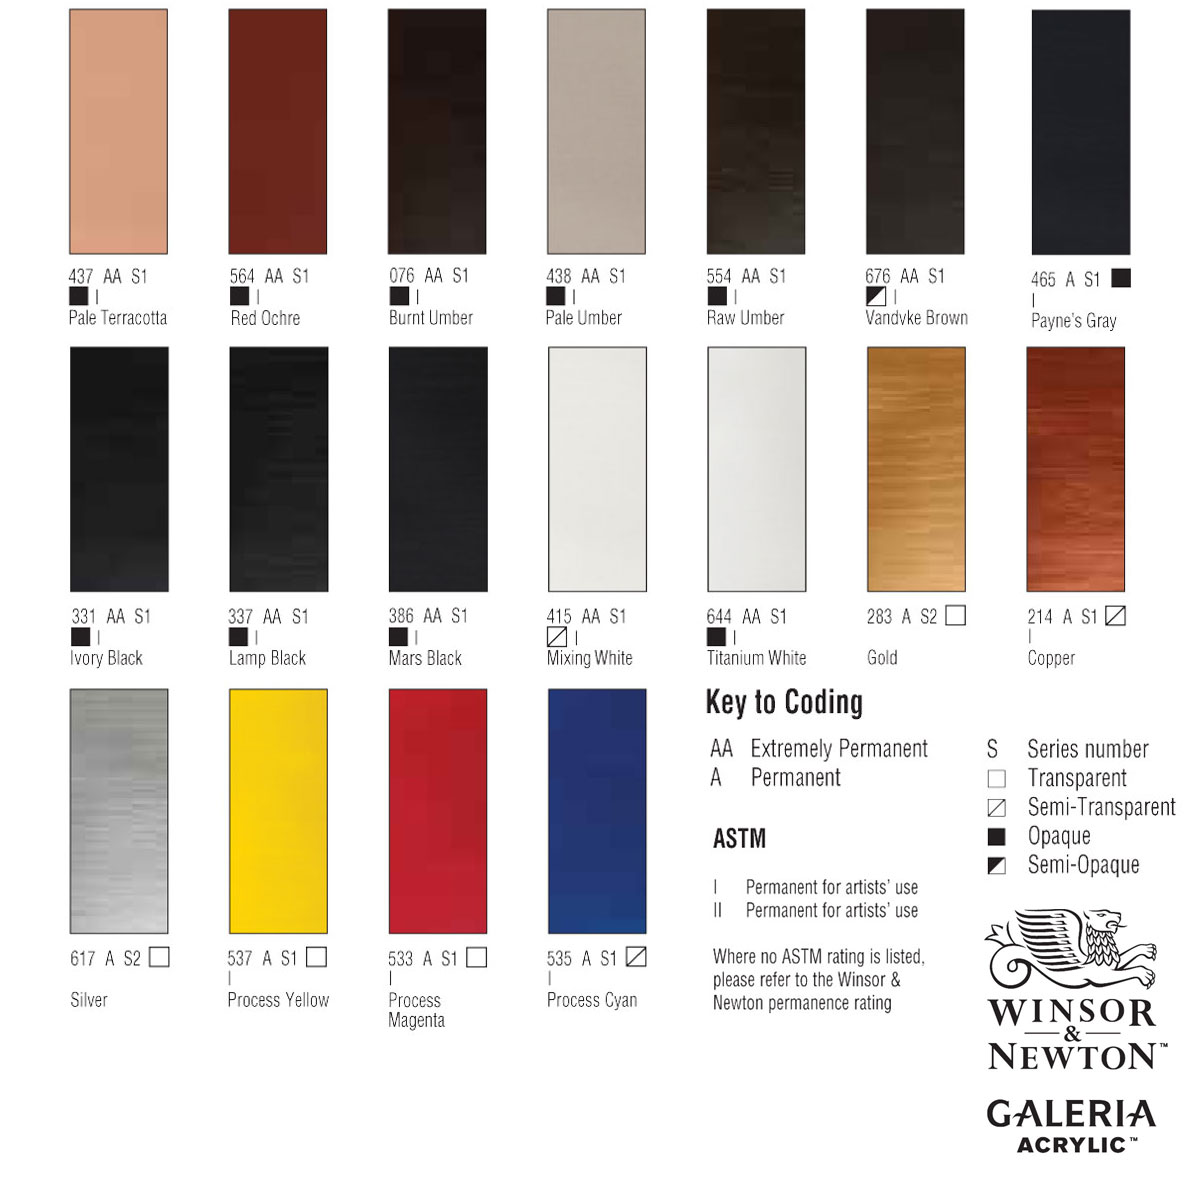 Winsor And Newton Galeria Acrylic Paint Colour Chart